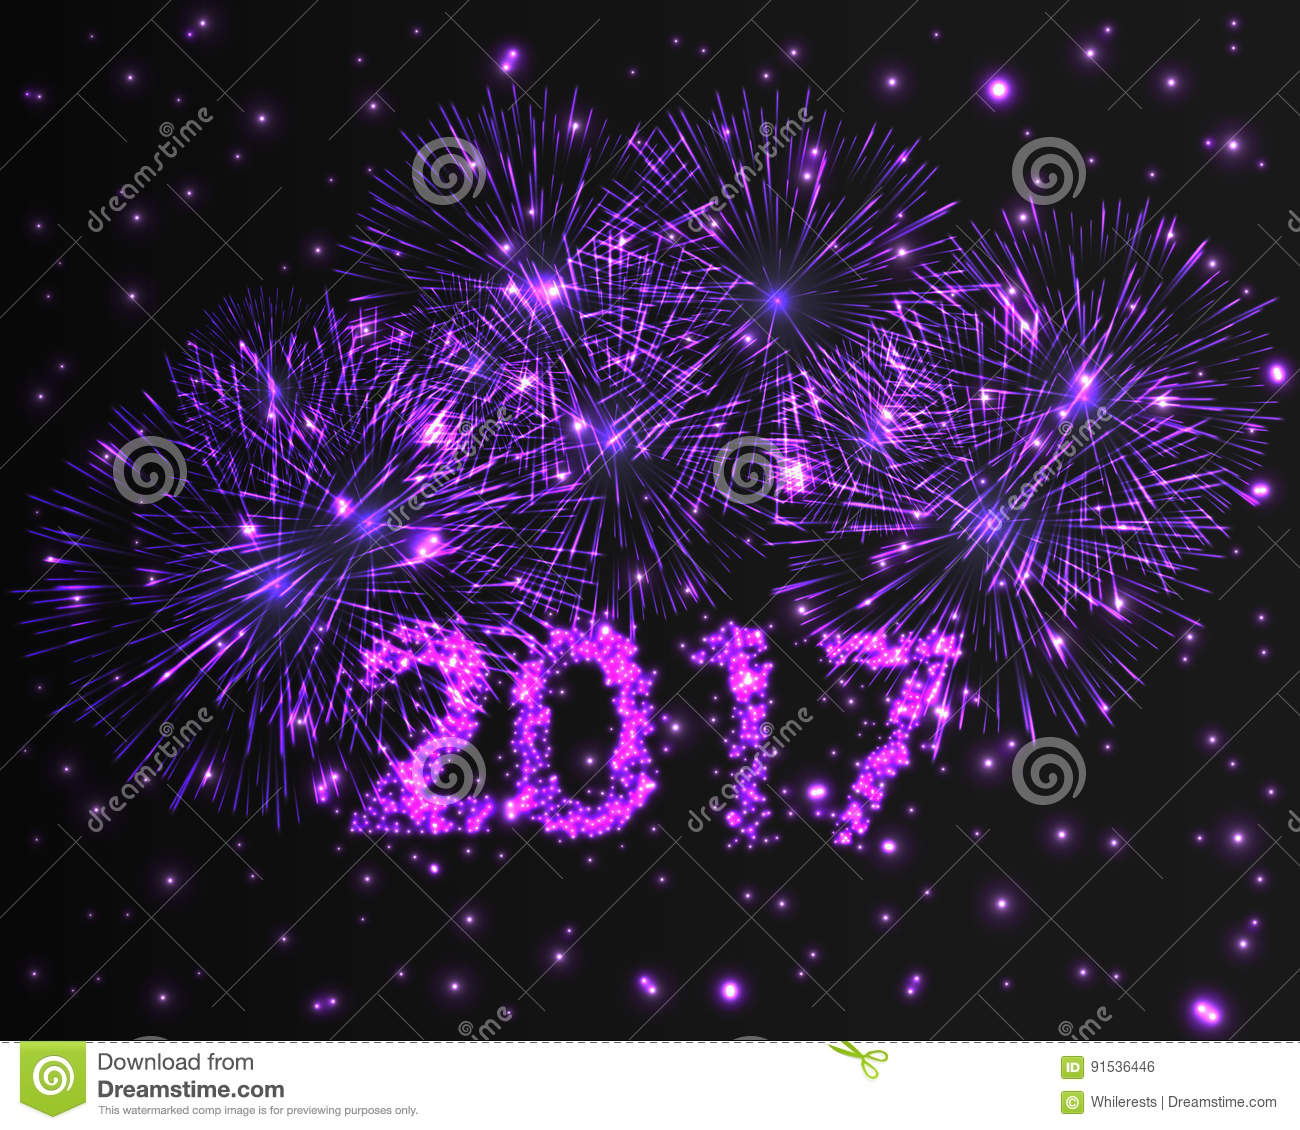 happy new year 2017 firework background greeting card with particle illustration